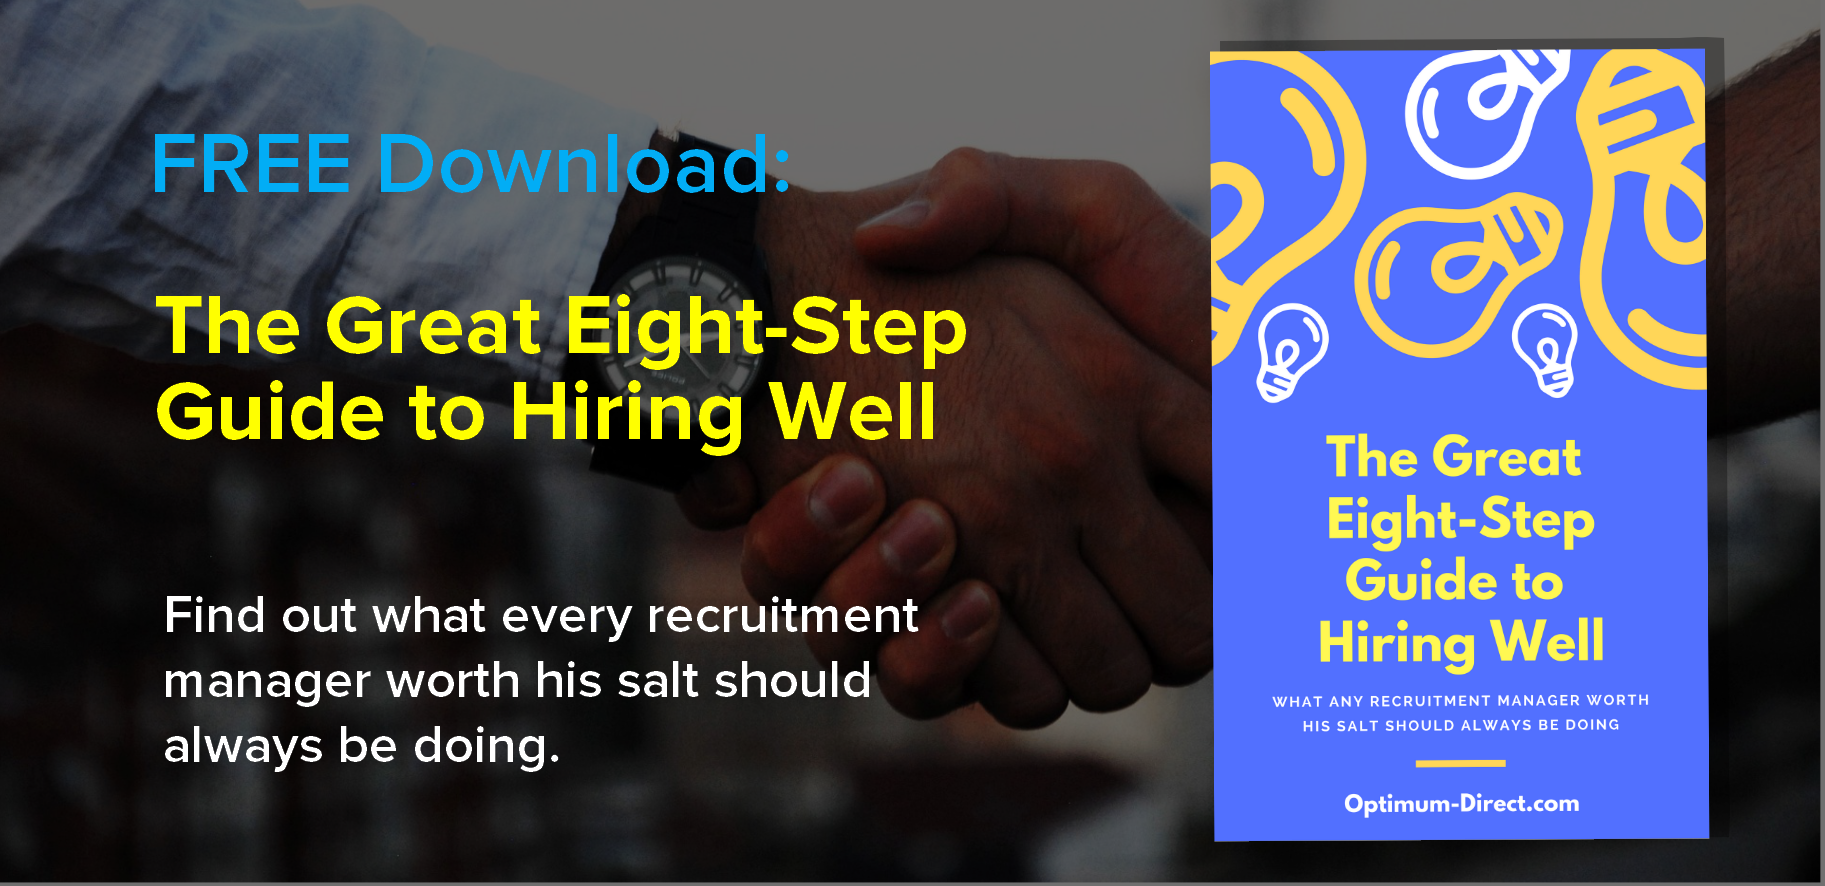 The Great Eight-Step Guide to Hiring Well - This document is a compendium of the best practices of cost-effective job recruitment worldwide, compiled by the Optimum Direct team in just one guide for your convenience and recruiting excellence.